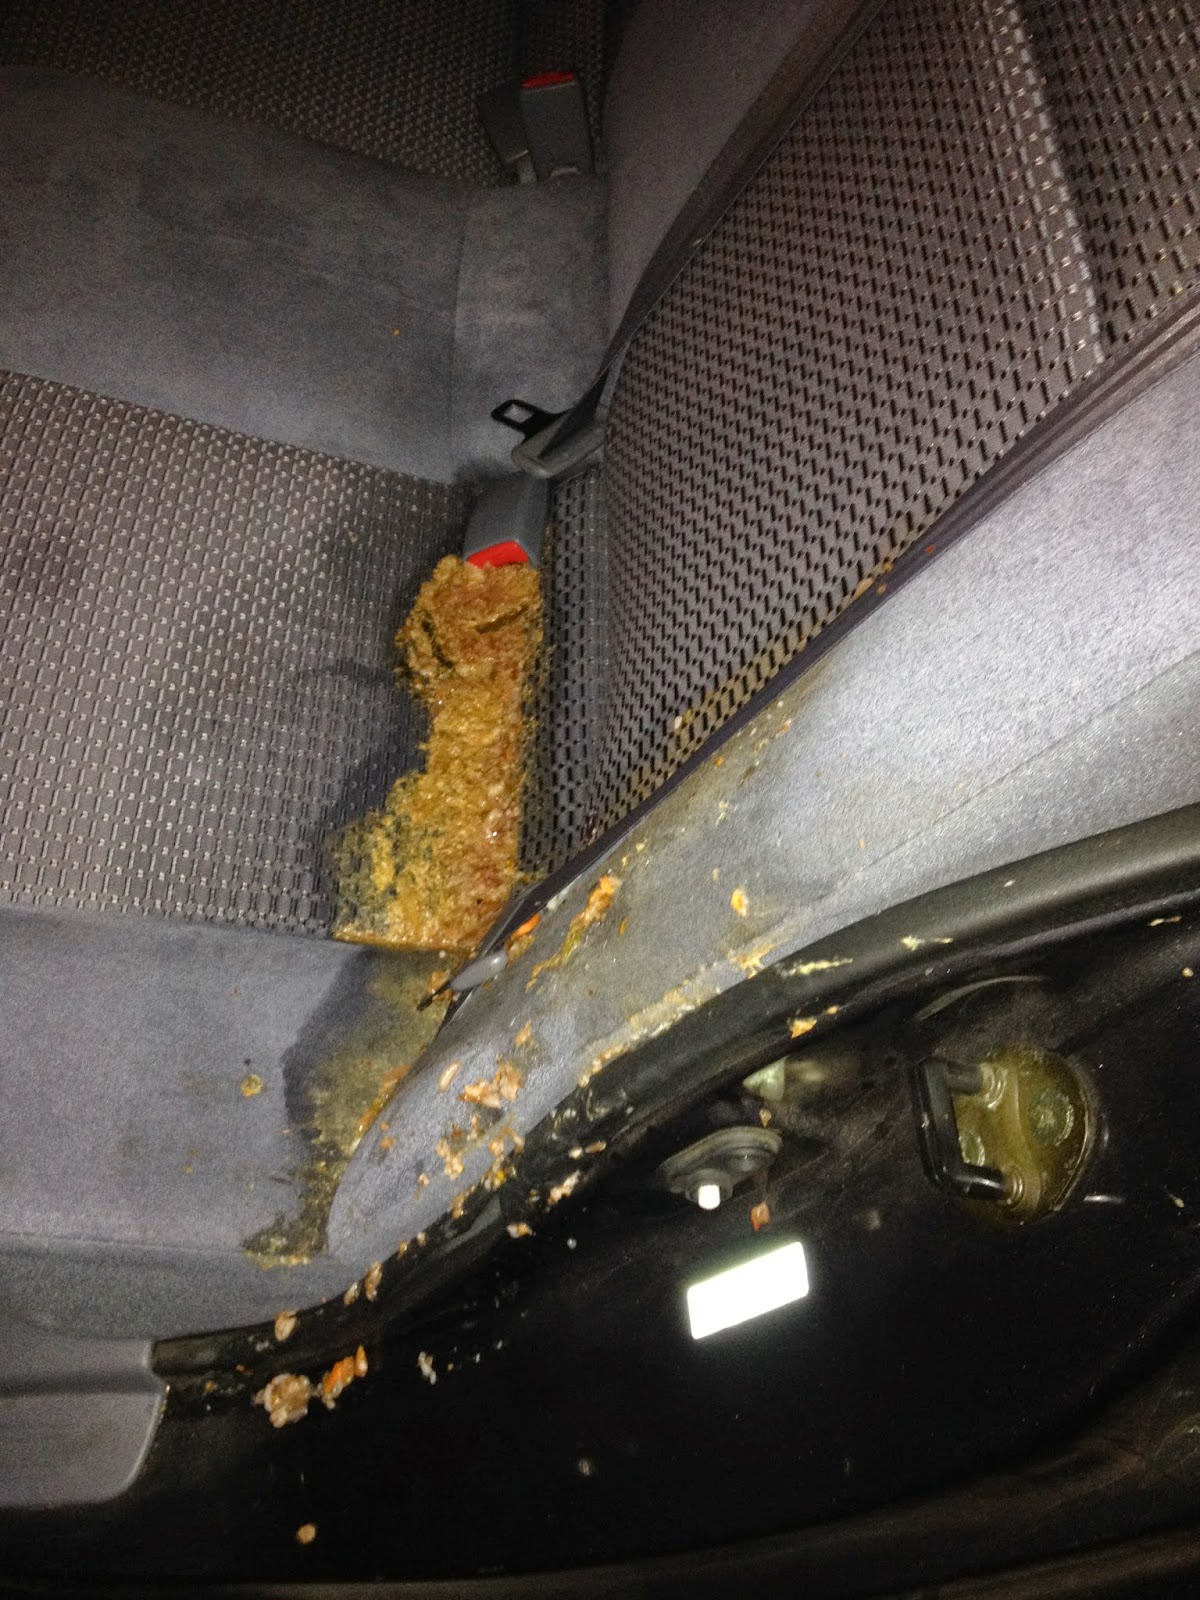 How To Clean Vomit From Car Seat